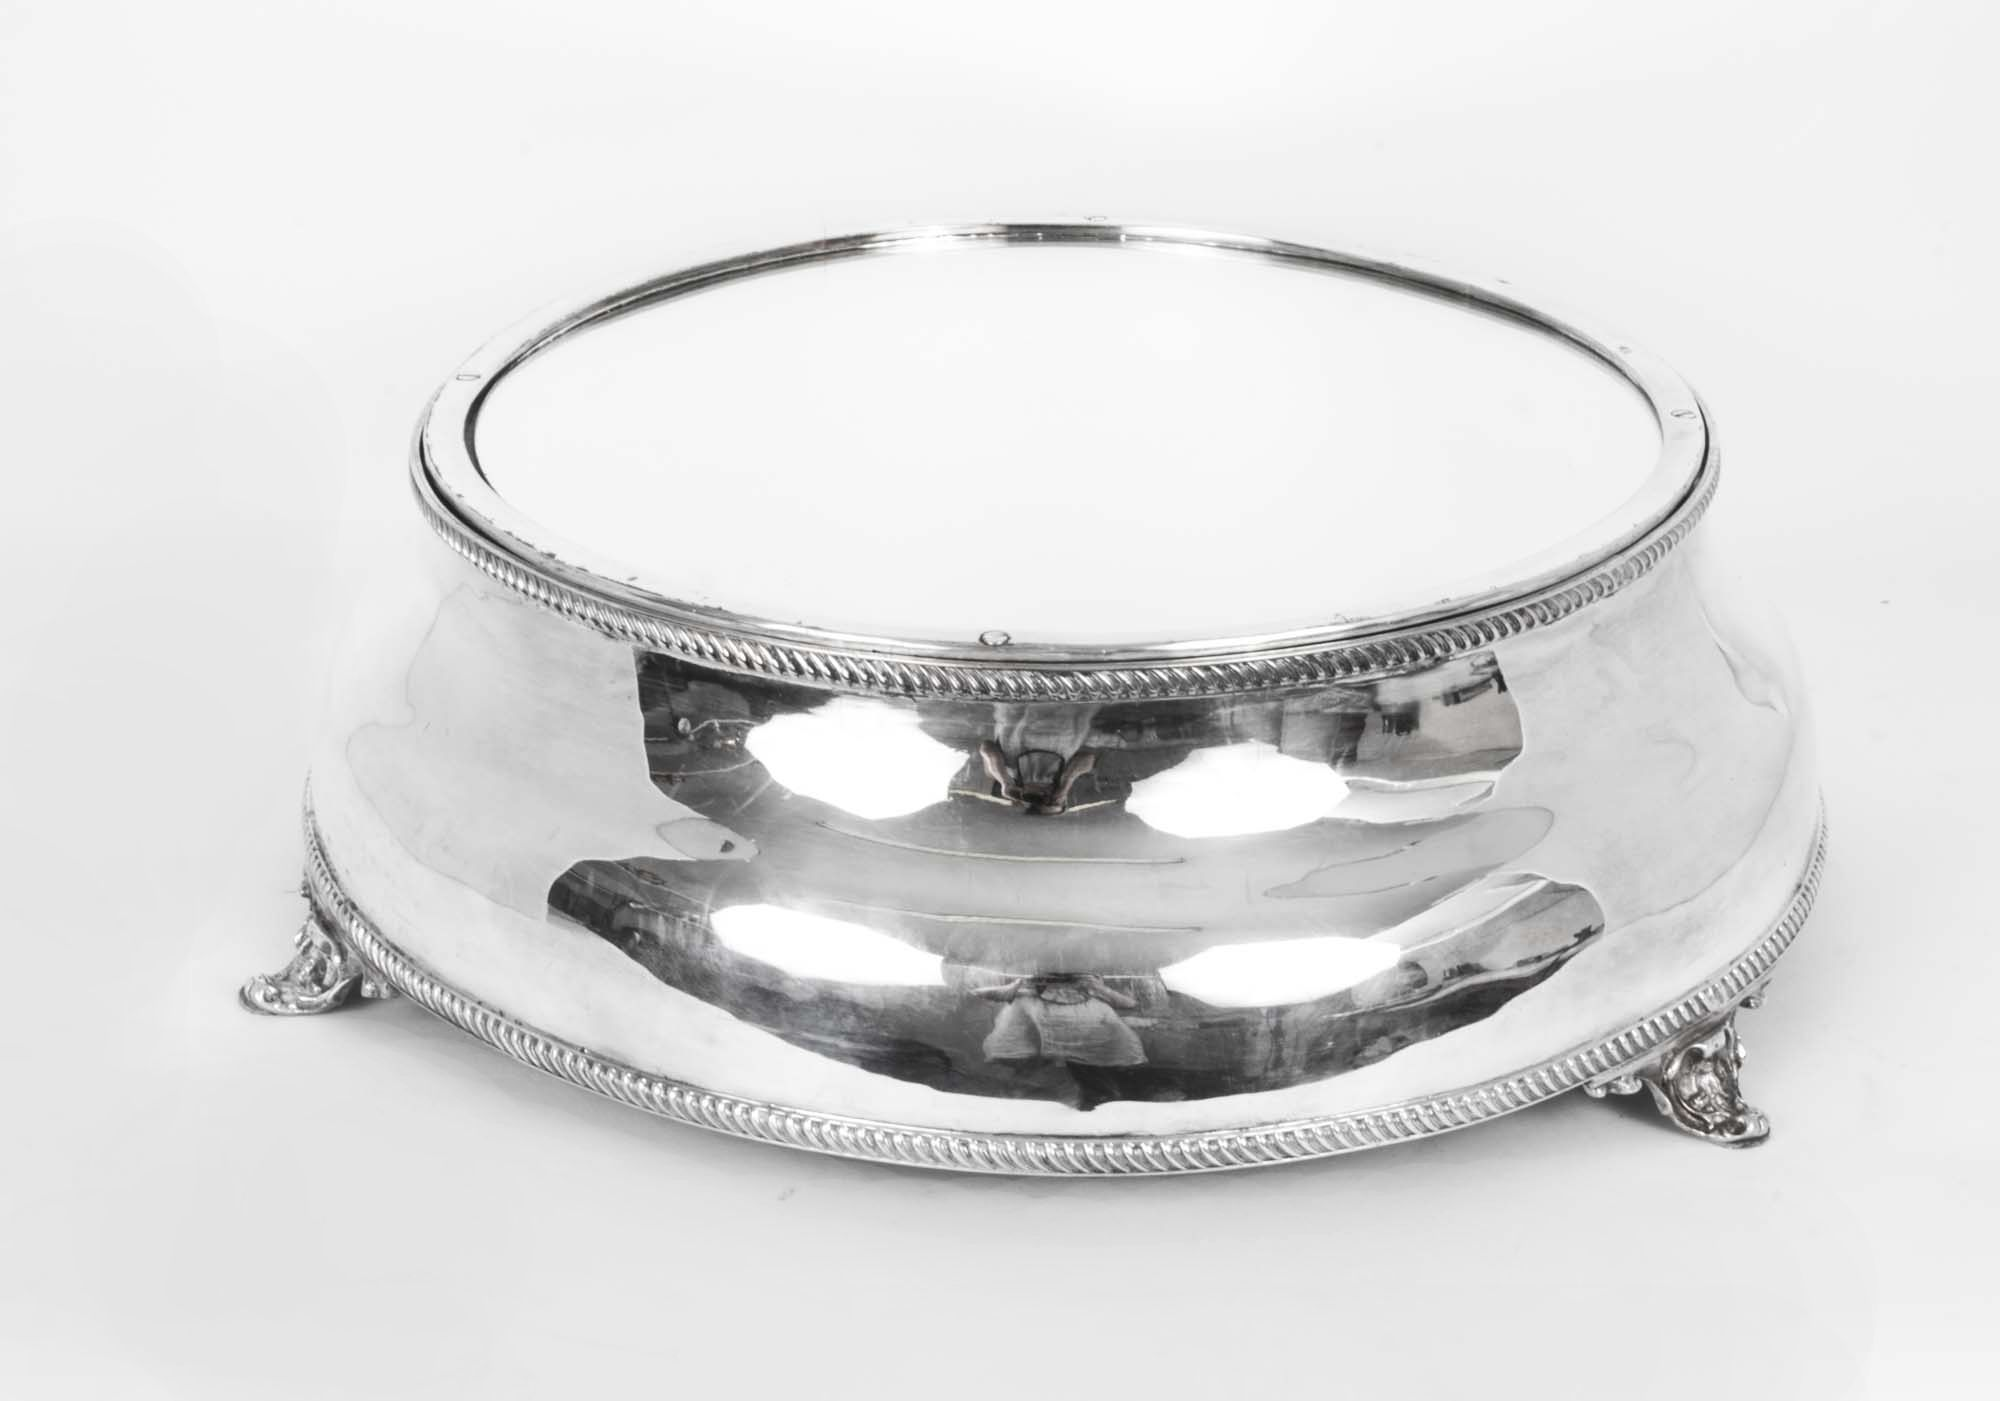 Silver and silver plate - Silver plate - Antique English Silver Plated Cake Stand & An antique English silver-plated cake stand circa 1860. | Silver ...